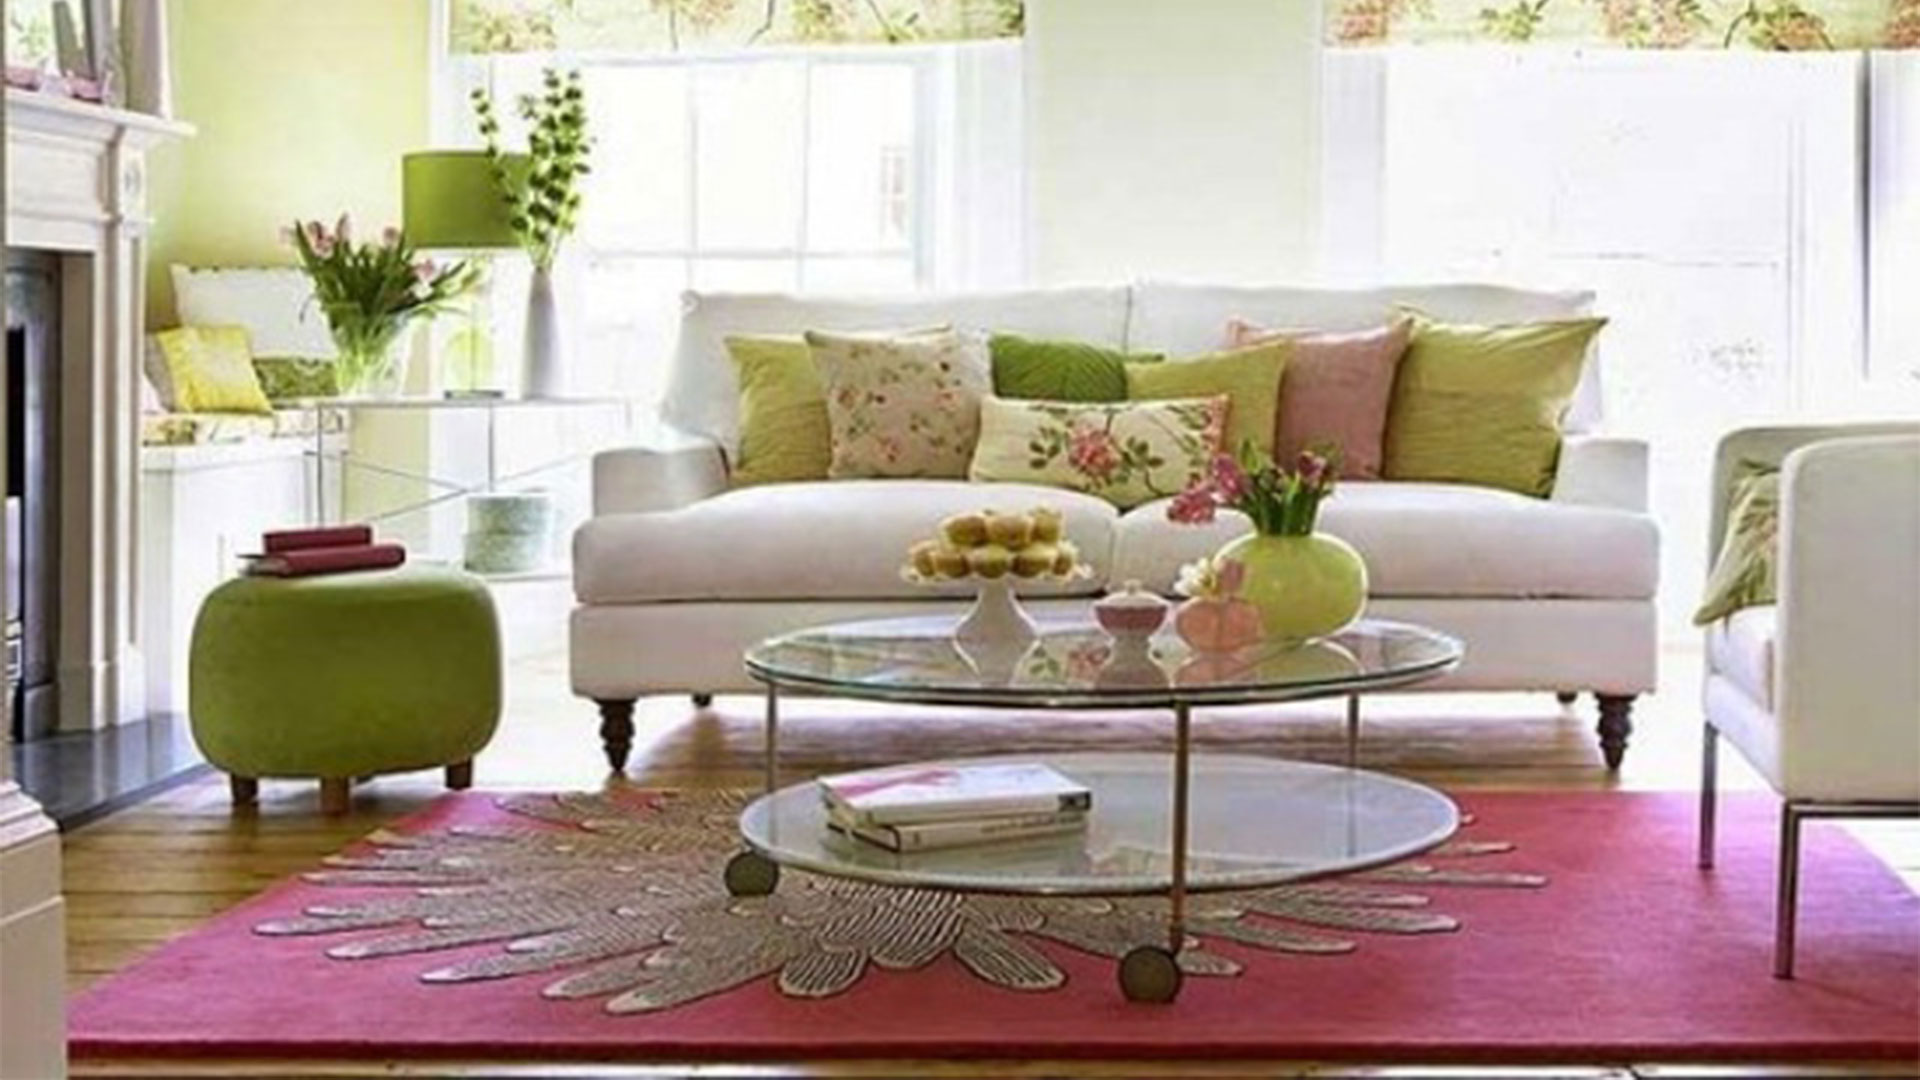 36 living room decorating ideas that smells like spring - Decorating living room ideas pinterest ...